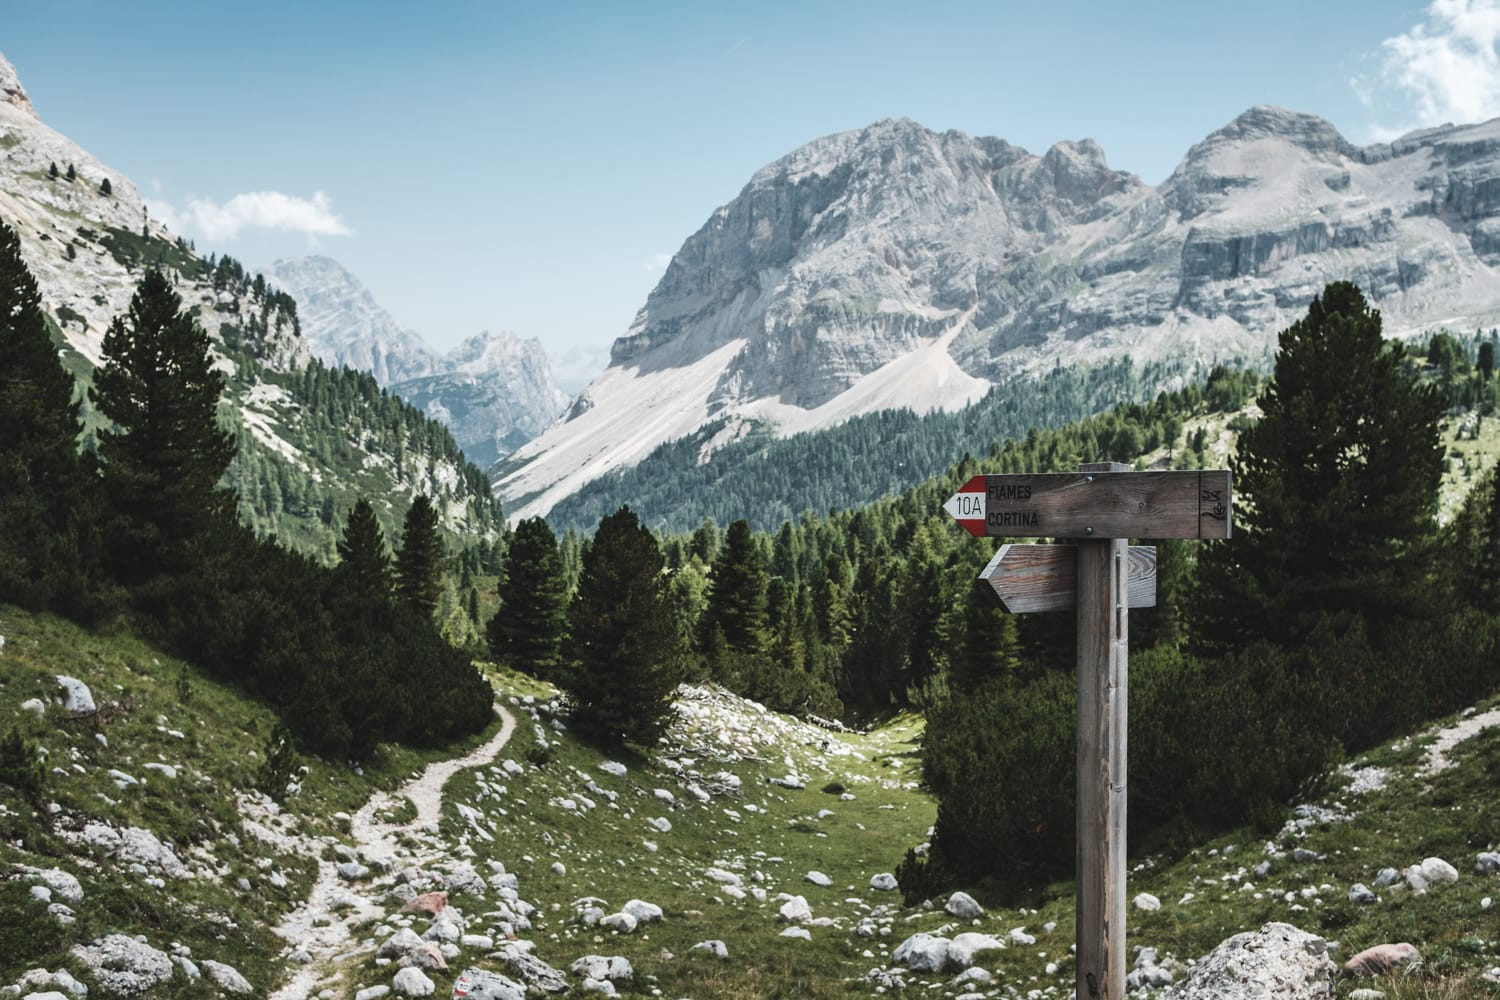 A hiking trail within the Dolomites, a mountain range in Italy.